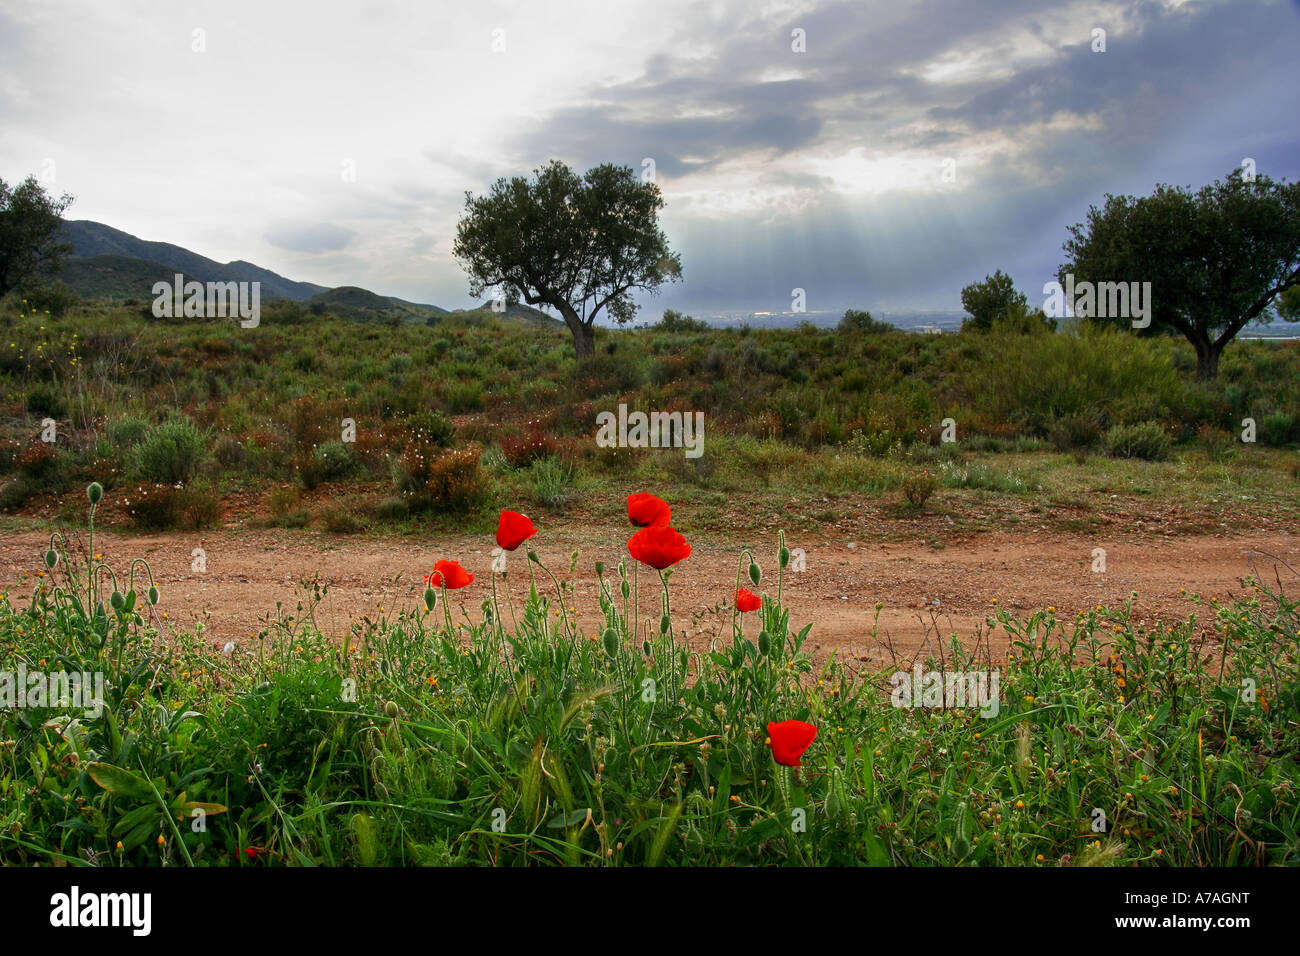 Indigenous vegetation to the area of Murcia, in southern Spain Stock Photo